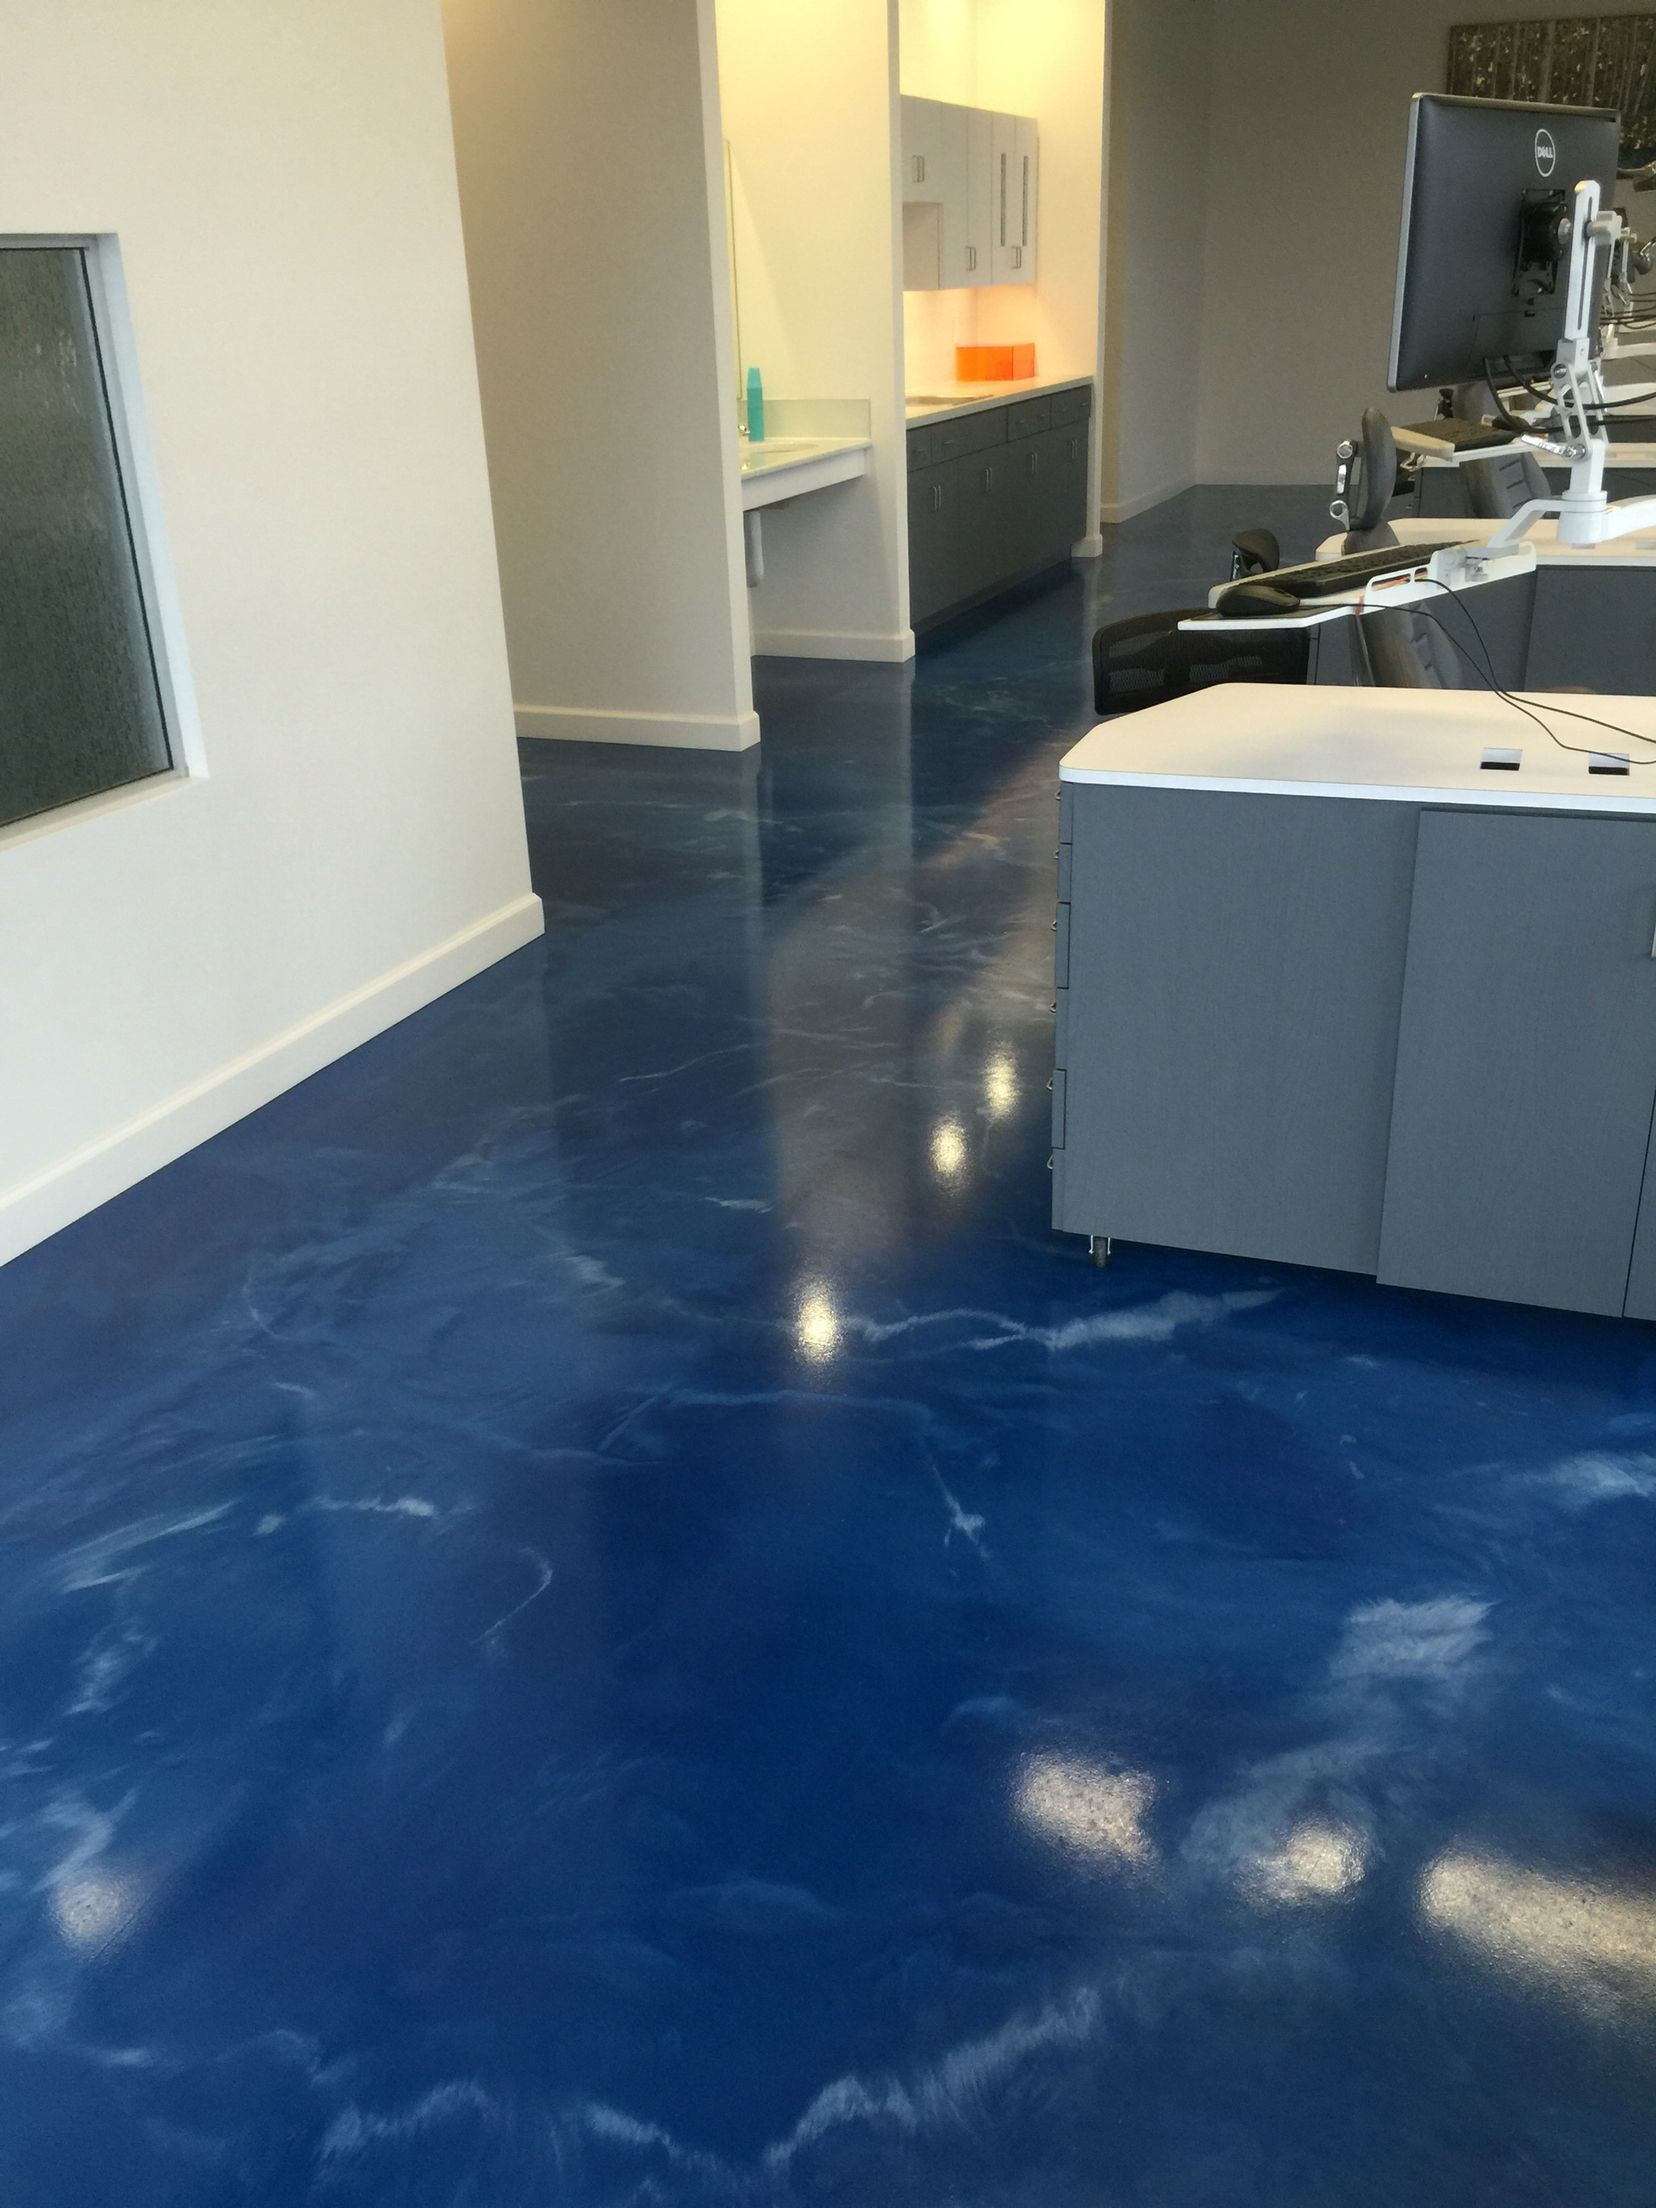 30 Wonderful Armstrong Hardwood Flooring Company Lancaster Pa 2021 free download armstrong hardwood flooring company lancaster pa of flooring contractor 50 beautiful epoxy flooring over tiles pics 50 s within flooring contractor metallic marble epoxy flooring dallas geor